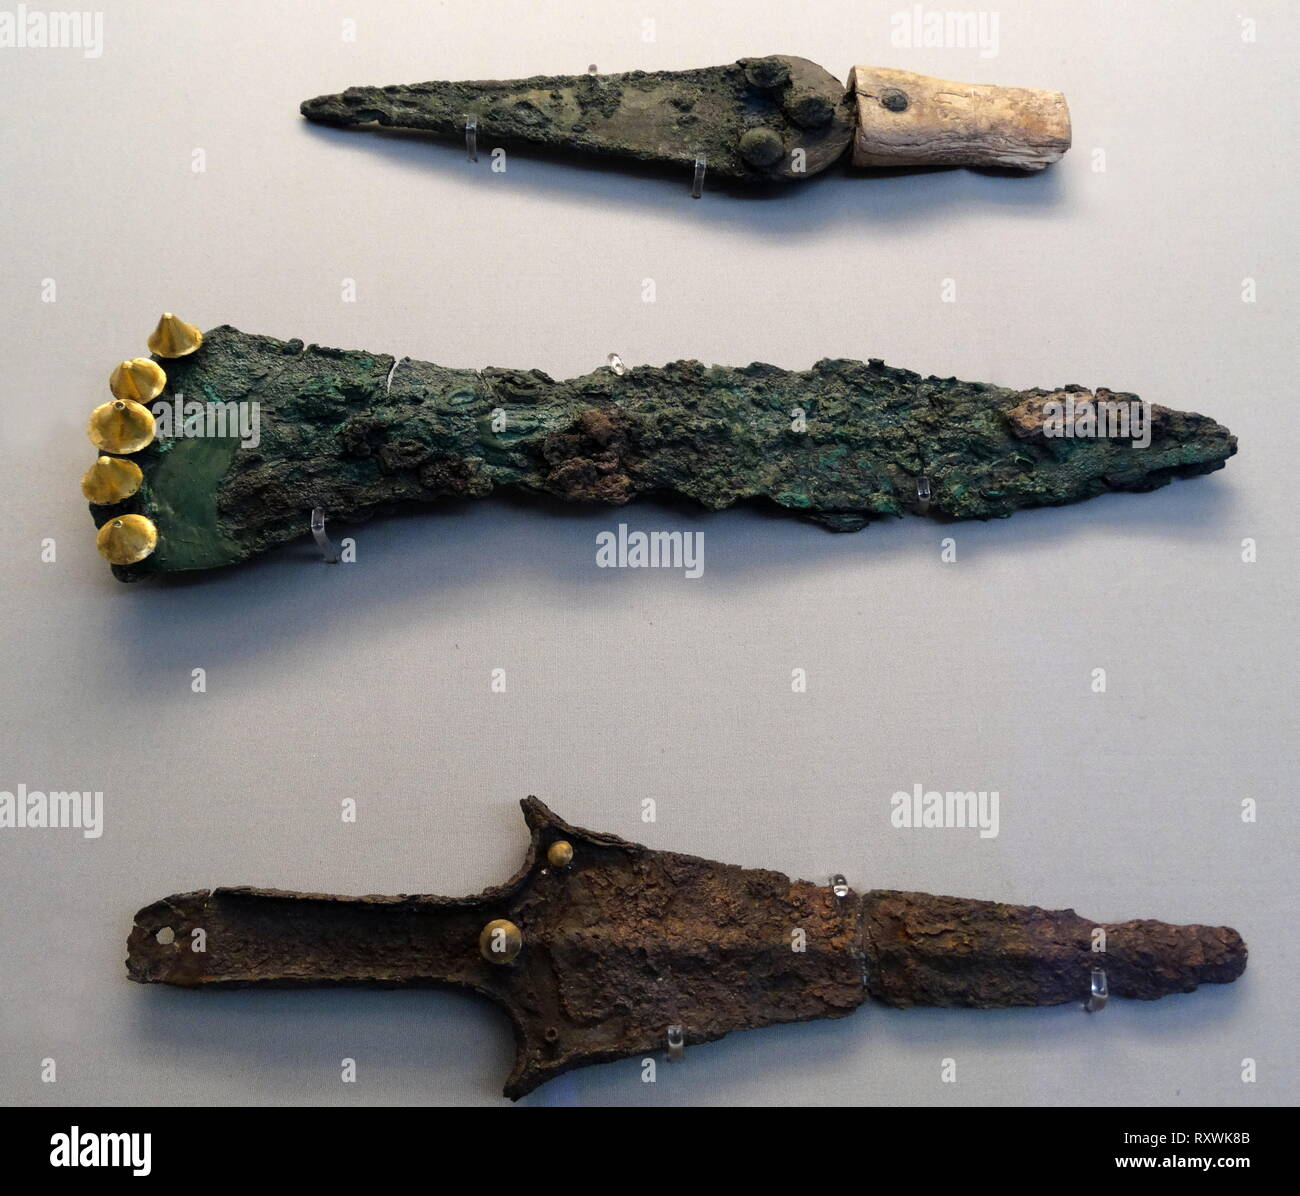 Dagger made from bronze with gilded attributes, from Circle A, a 16th-century BC royal cemetery, of the Bronze Age citadel of Mycenae in southern Greece. Characteristic of the early phase of the Mycenaean civilization - Stock Image